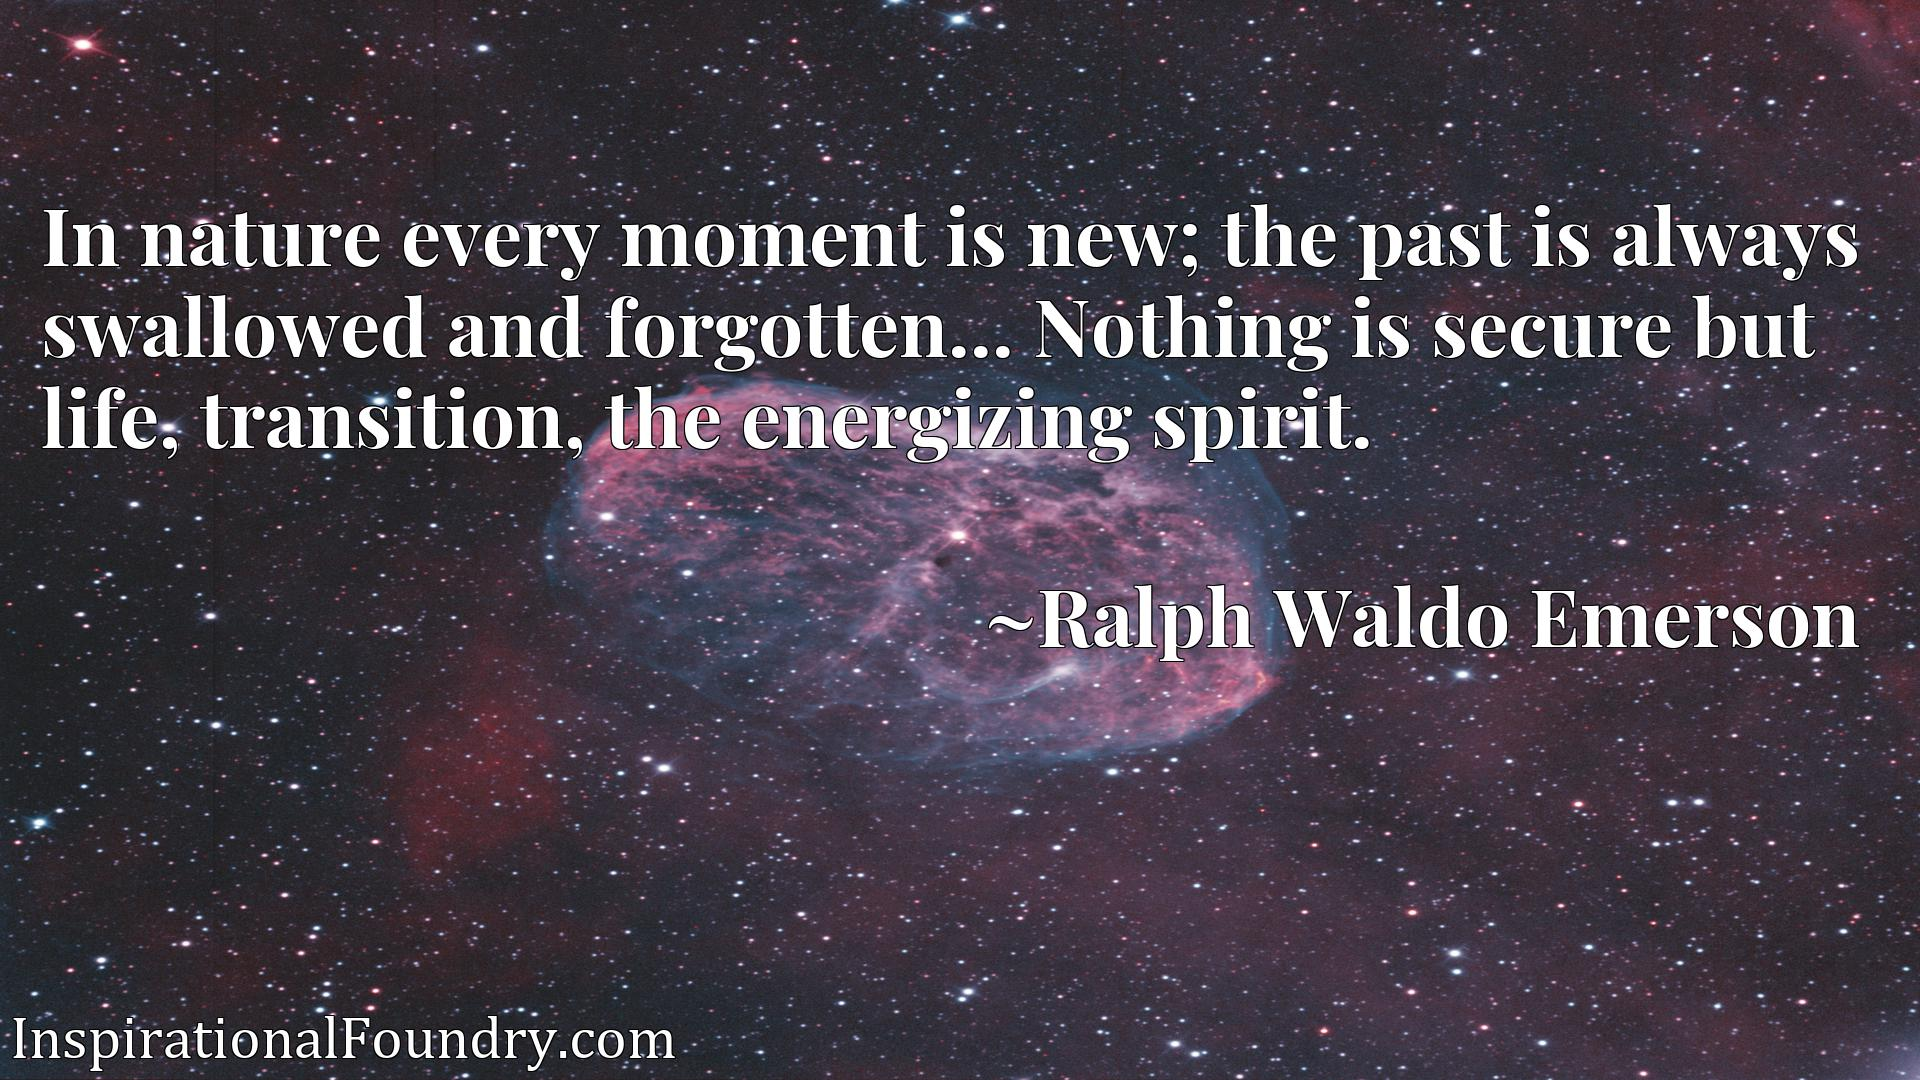 In nature every moment is new; the past is always swallowed and forgotten... Nothing is secure but life, transition, the energizing spirit.